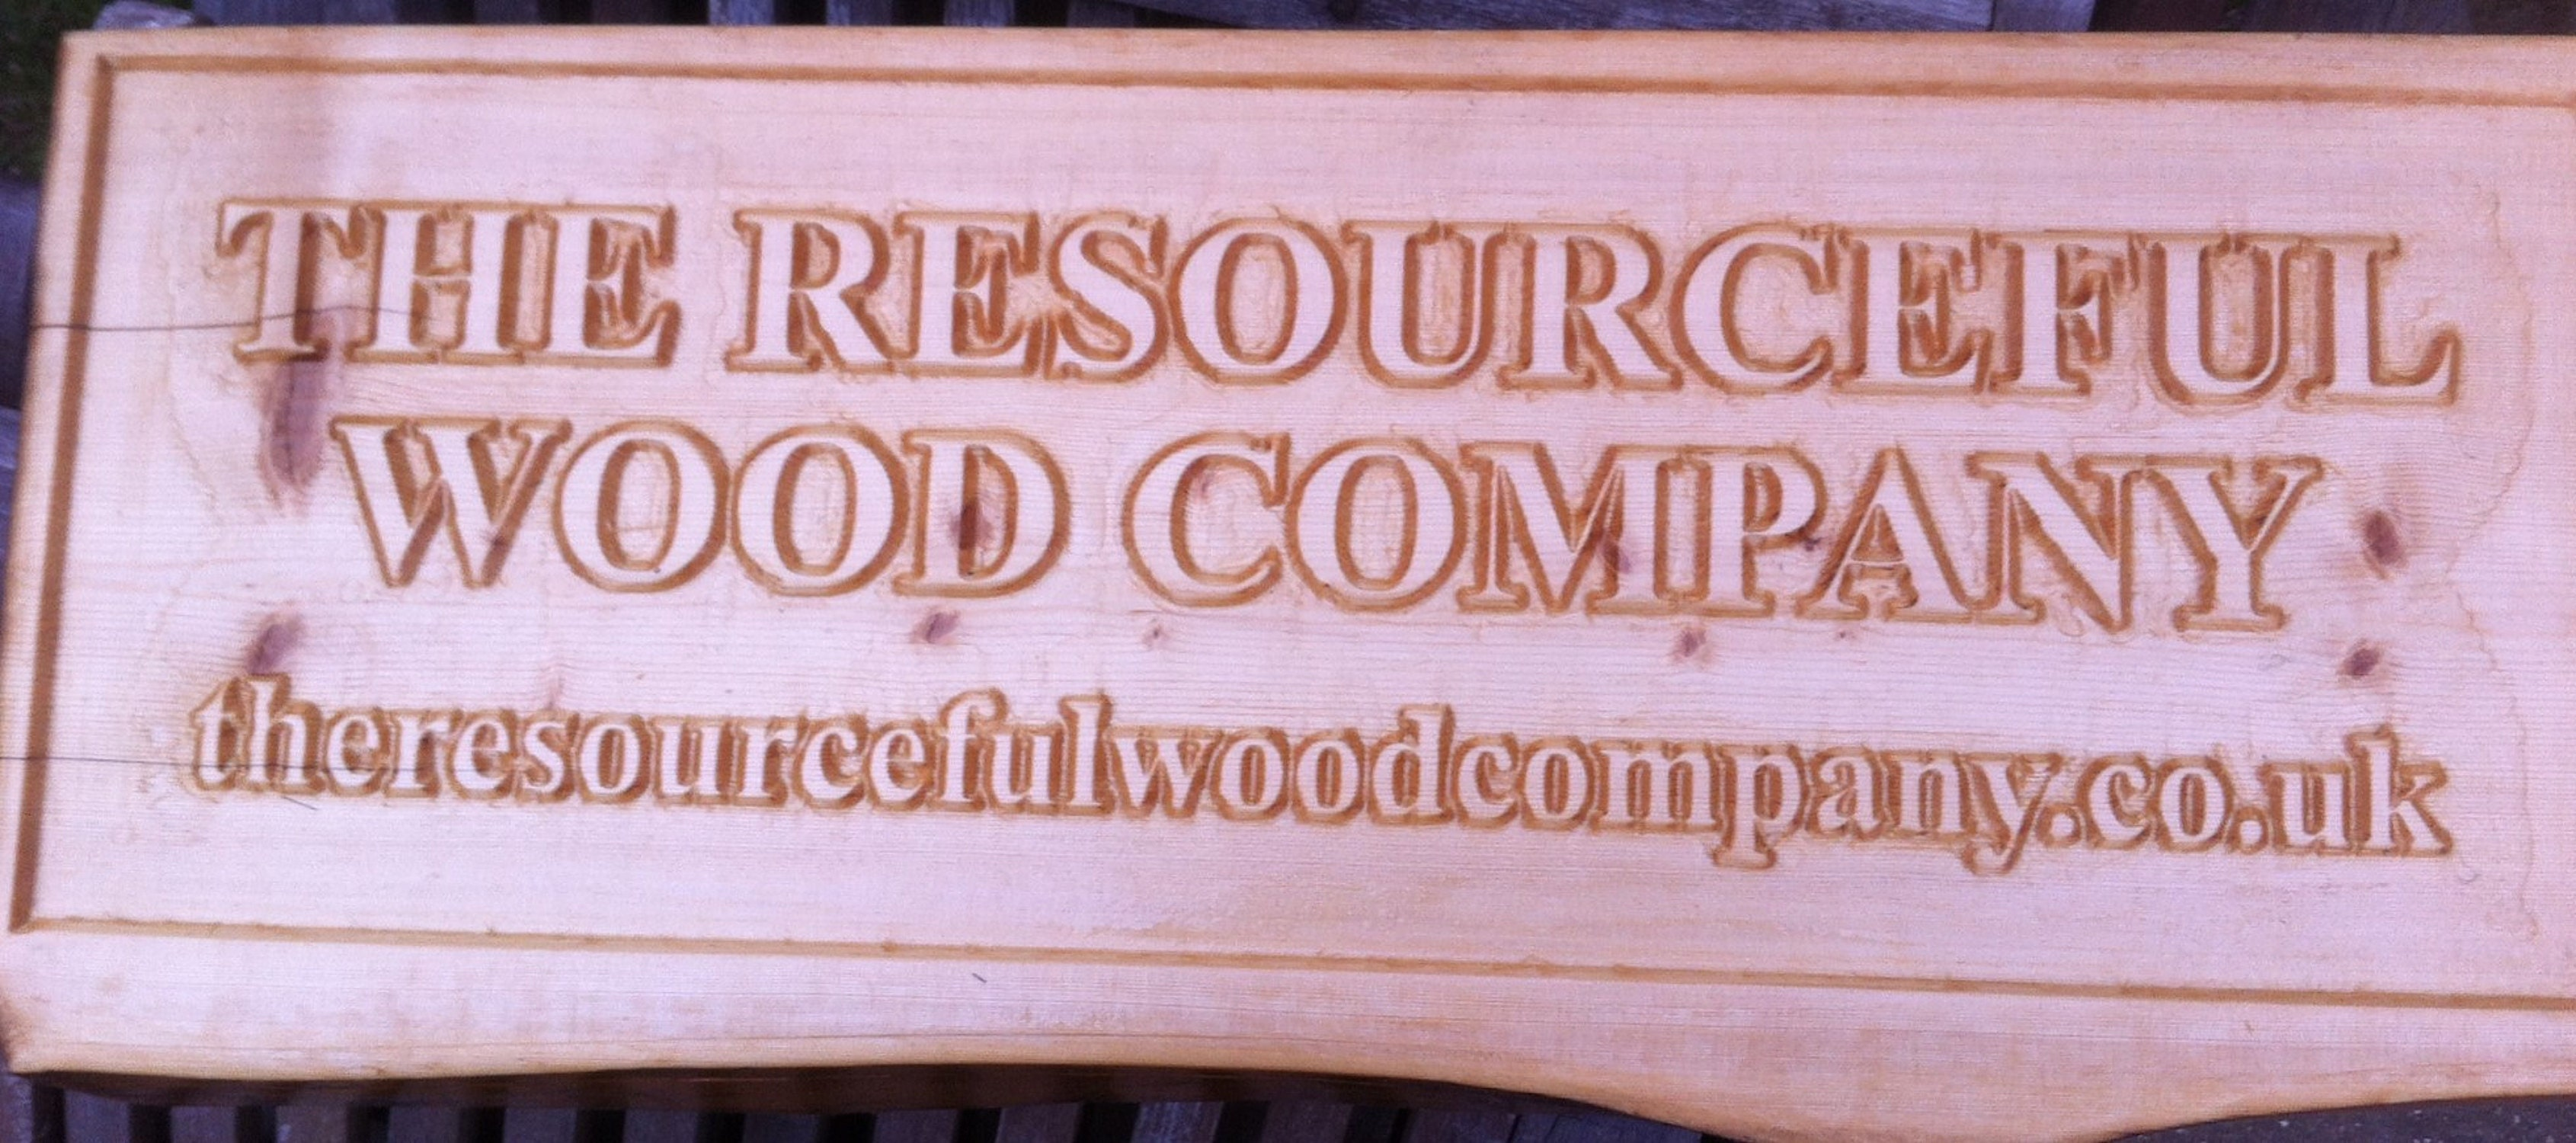 TheResourcefulWoodCo en Etsy